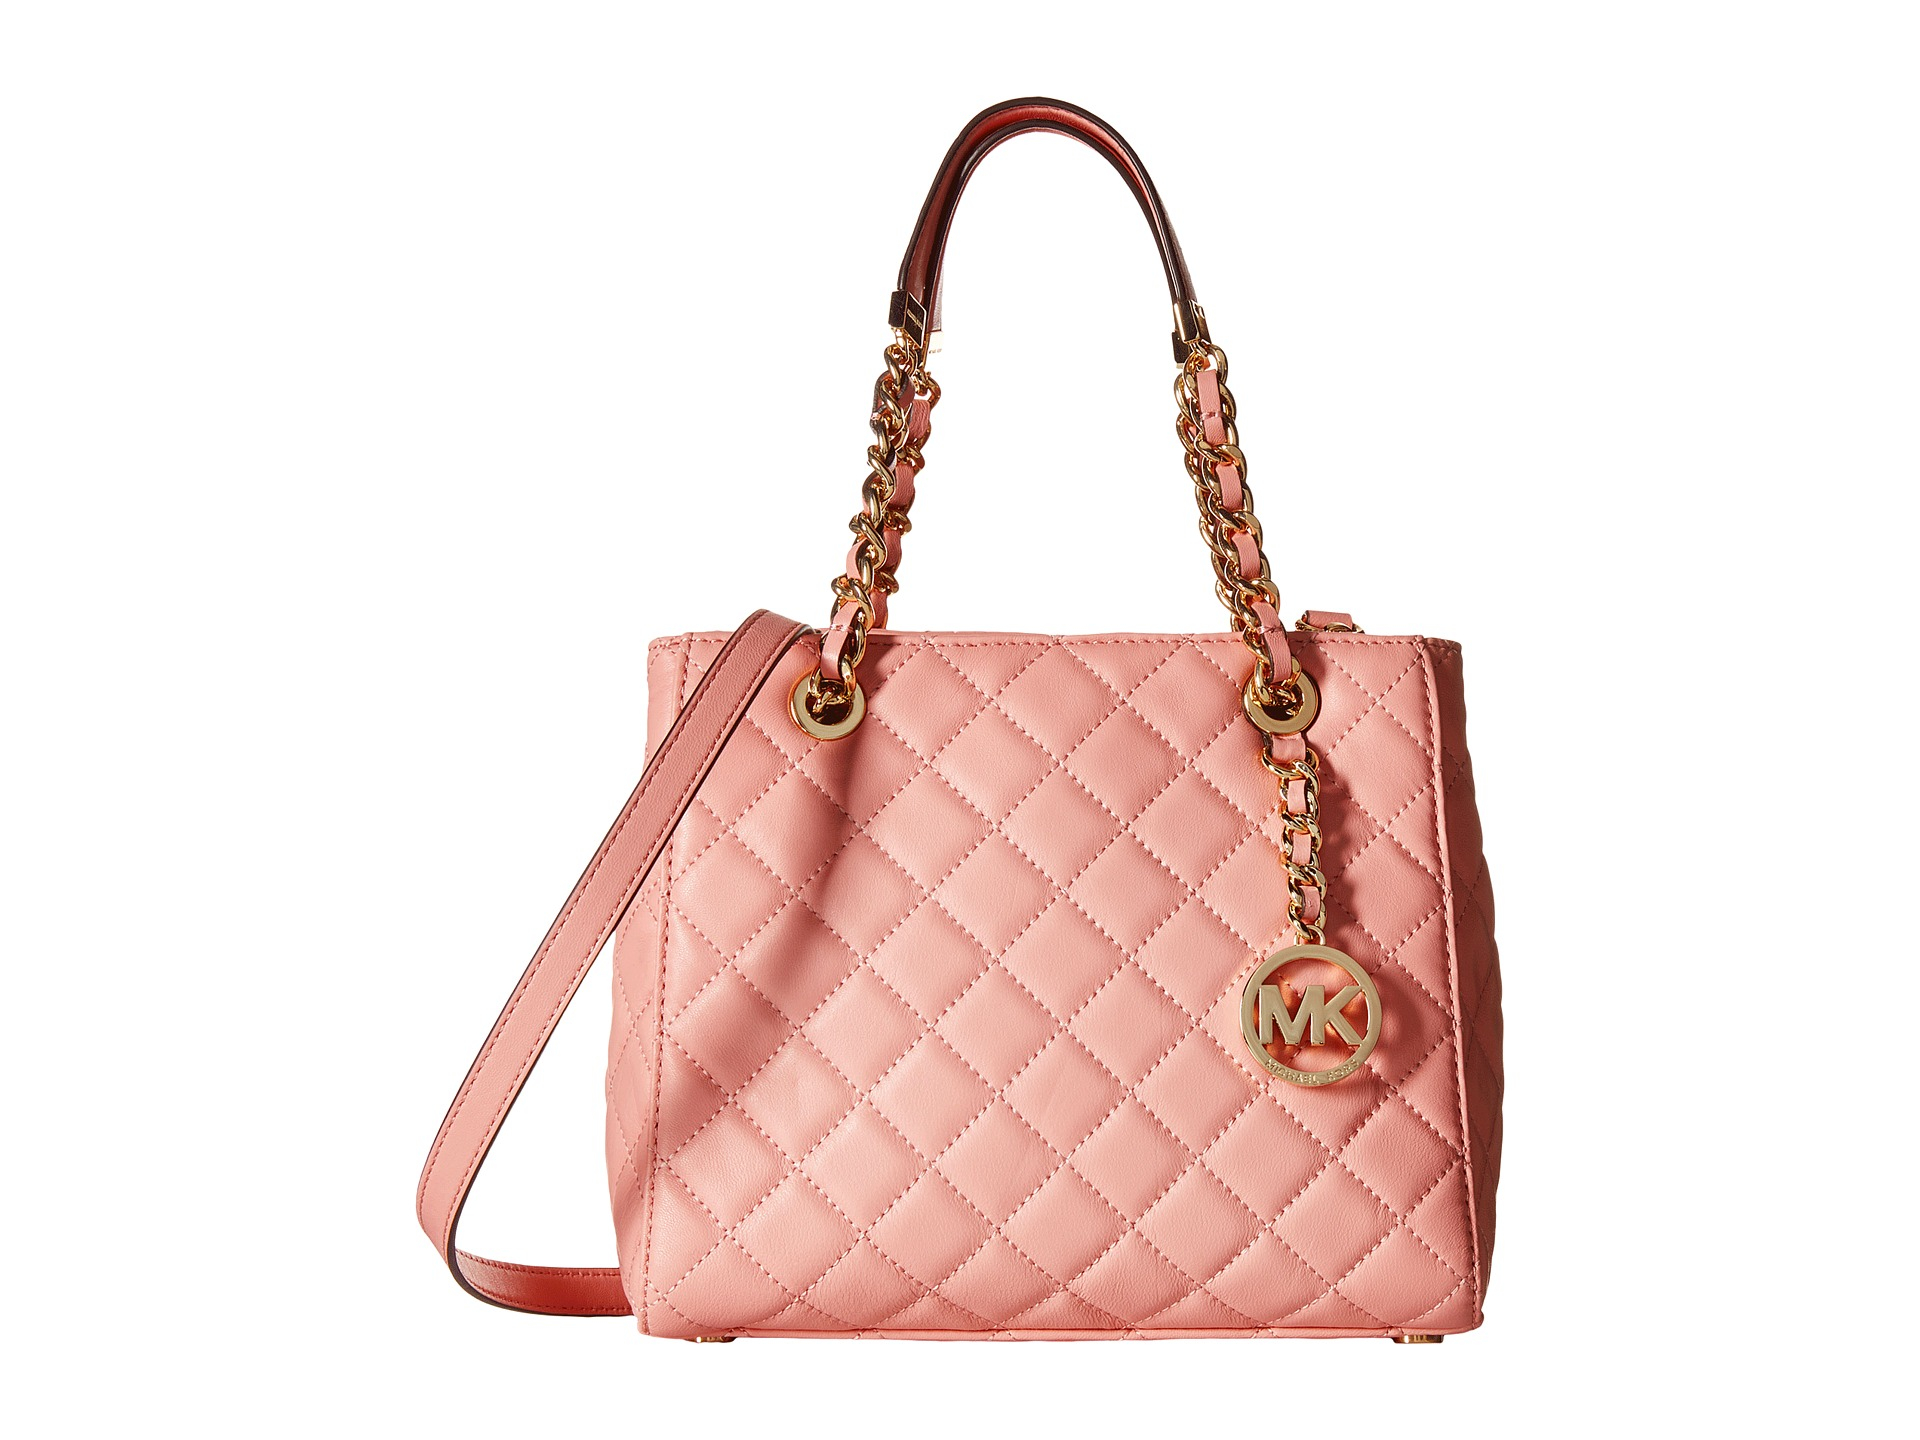 Lyst - MICHAEL Michael Kors Susannah Small North south Tote in Pink 1a2a6ae938